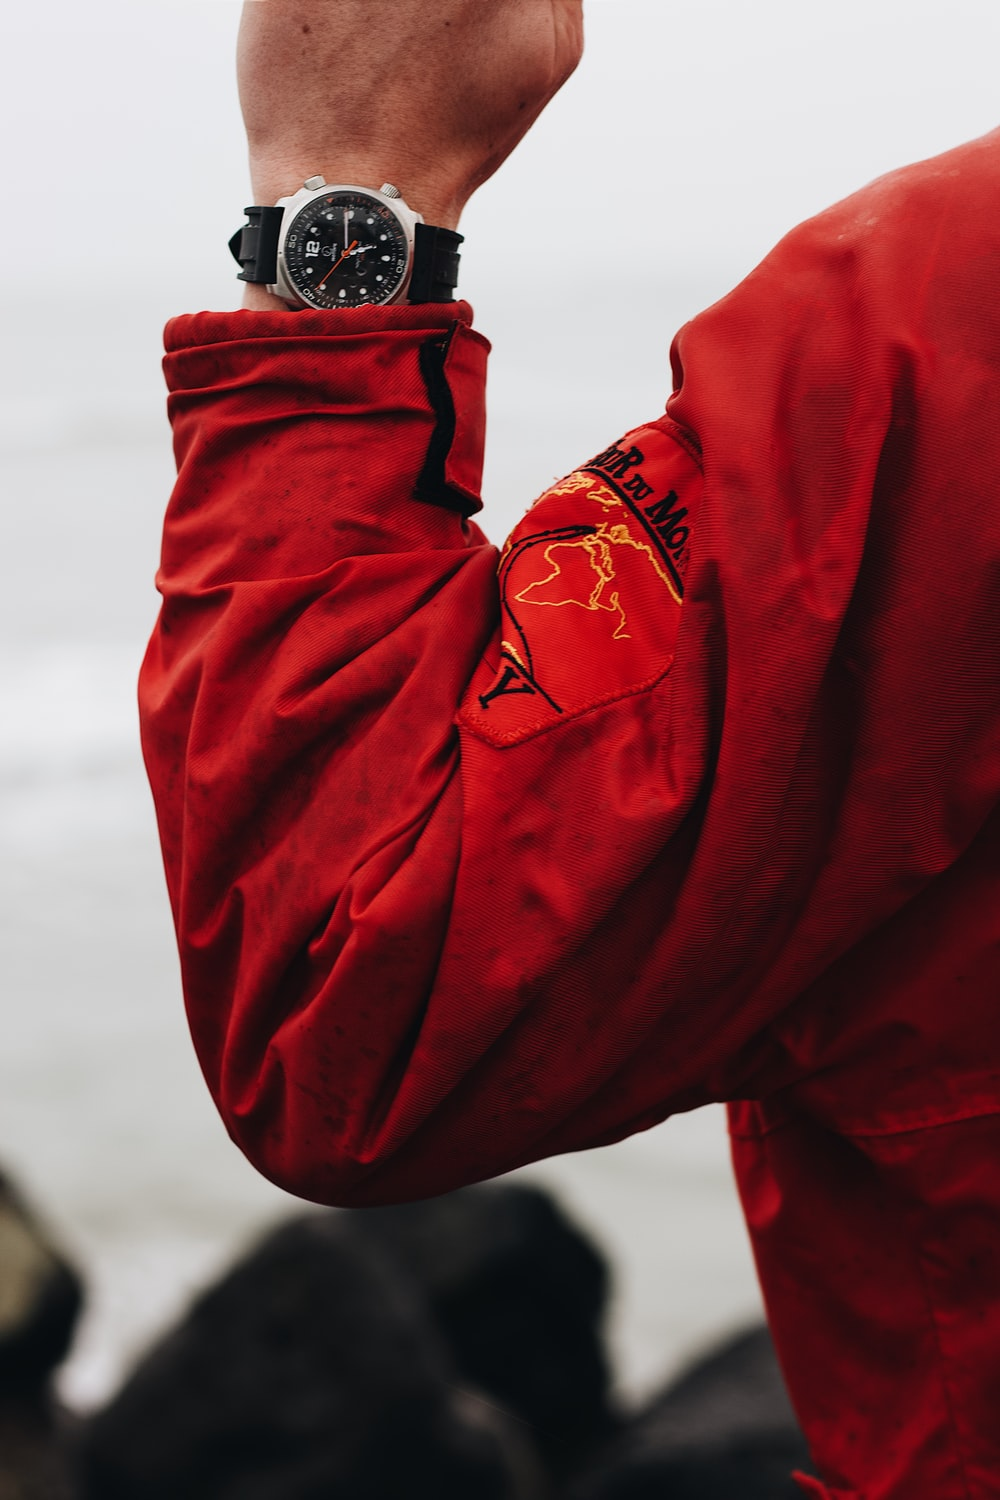 person in red jacket wearing black and silver watch